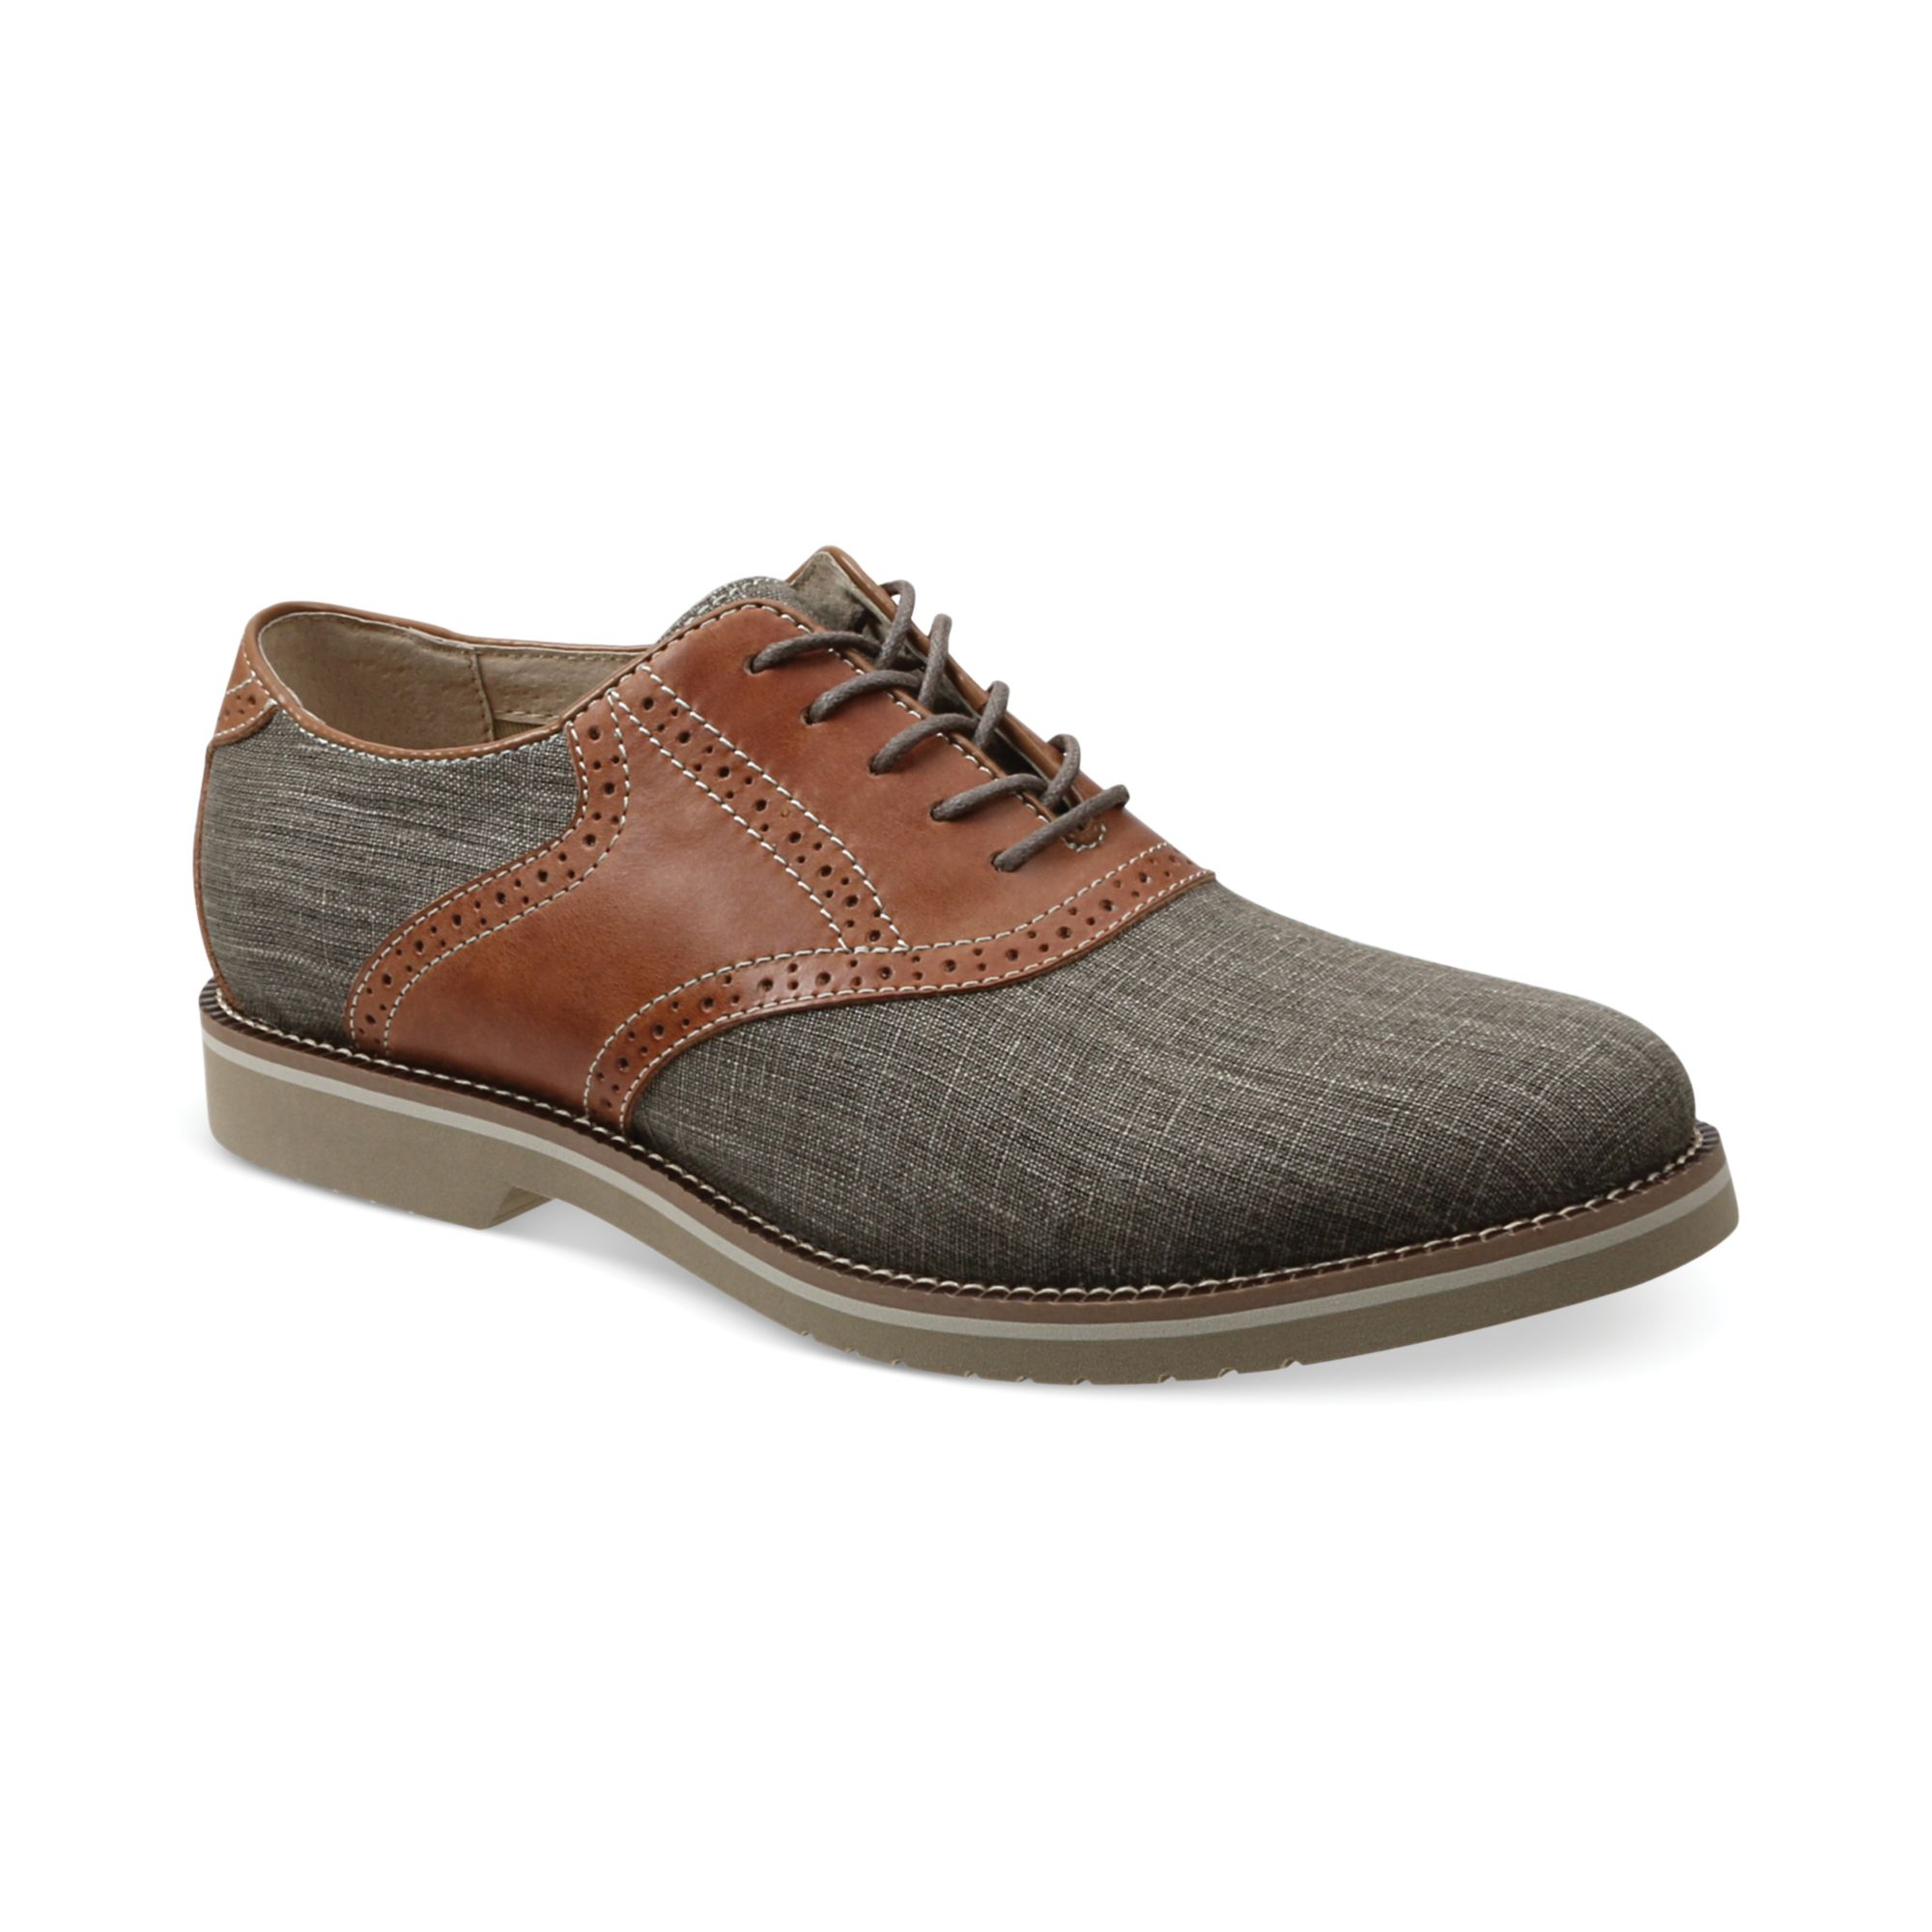 g h bass co carson saddle oxfords in gray for